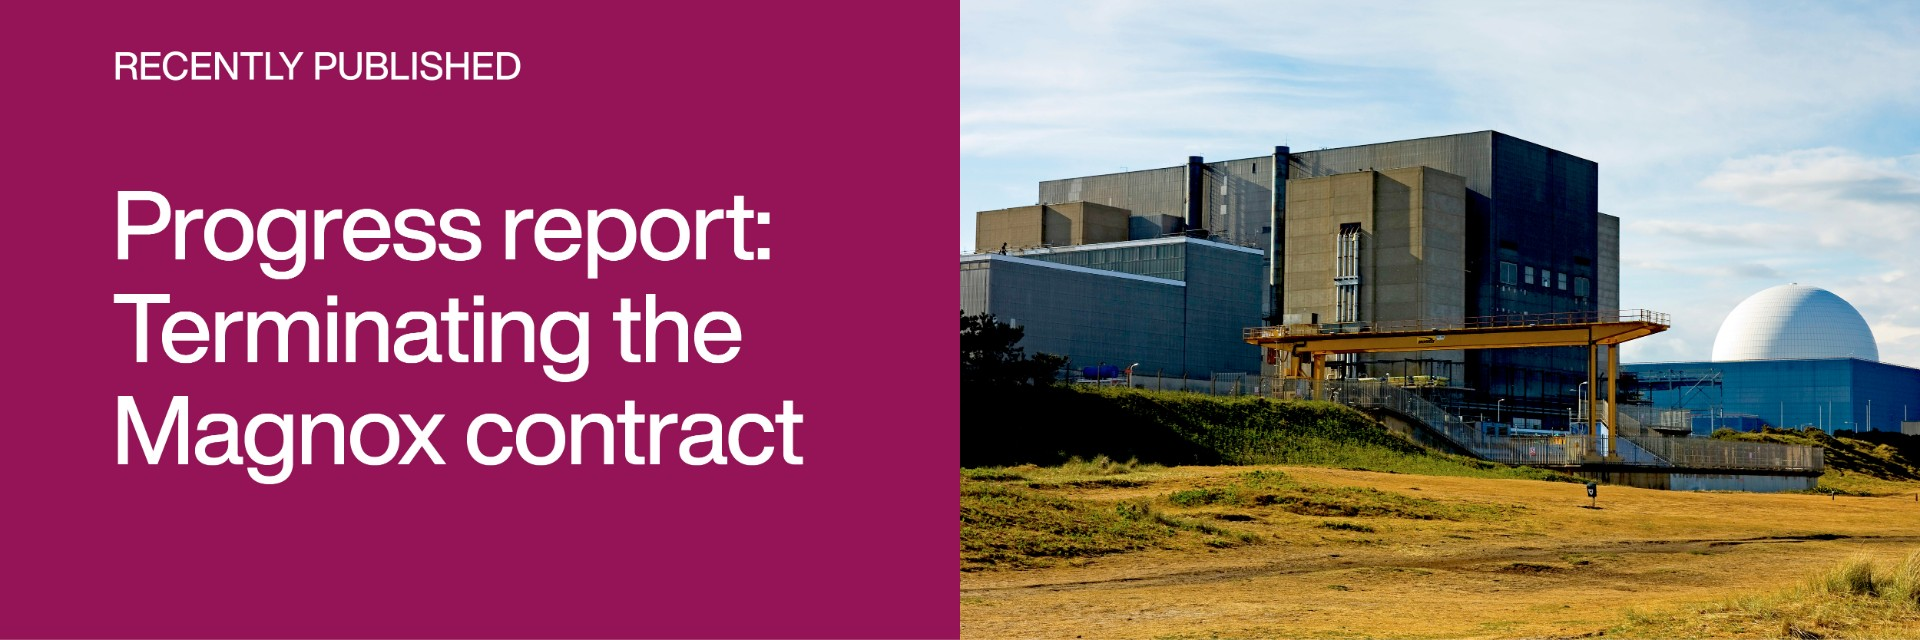 Link to progress report on terminating the Magnox contract